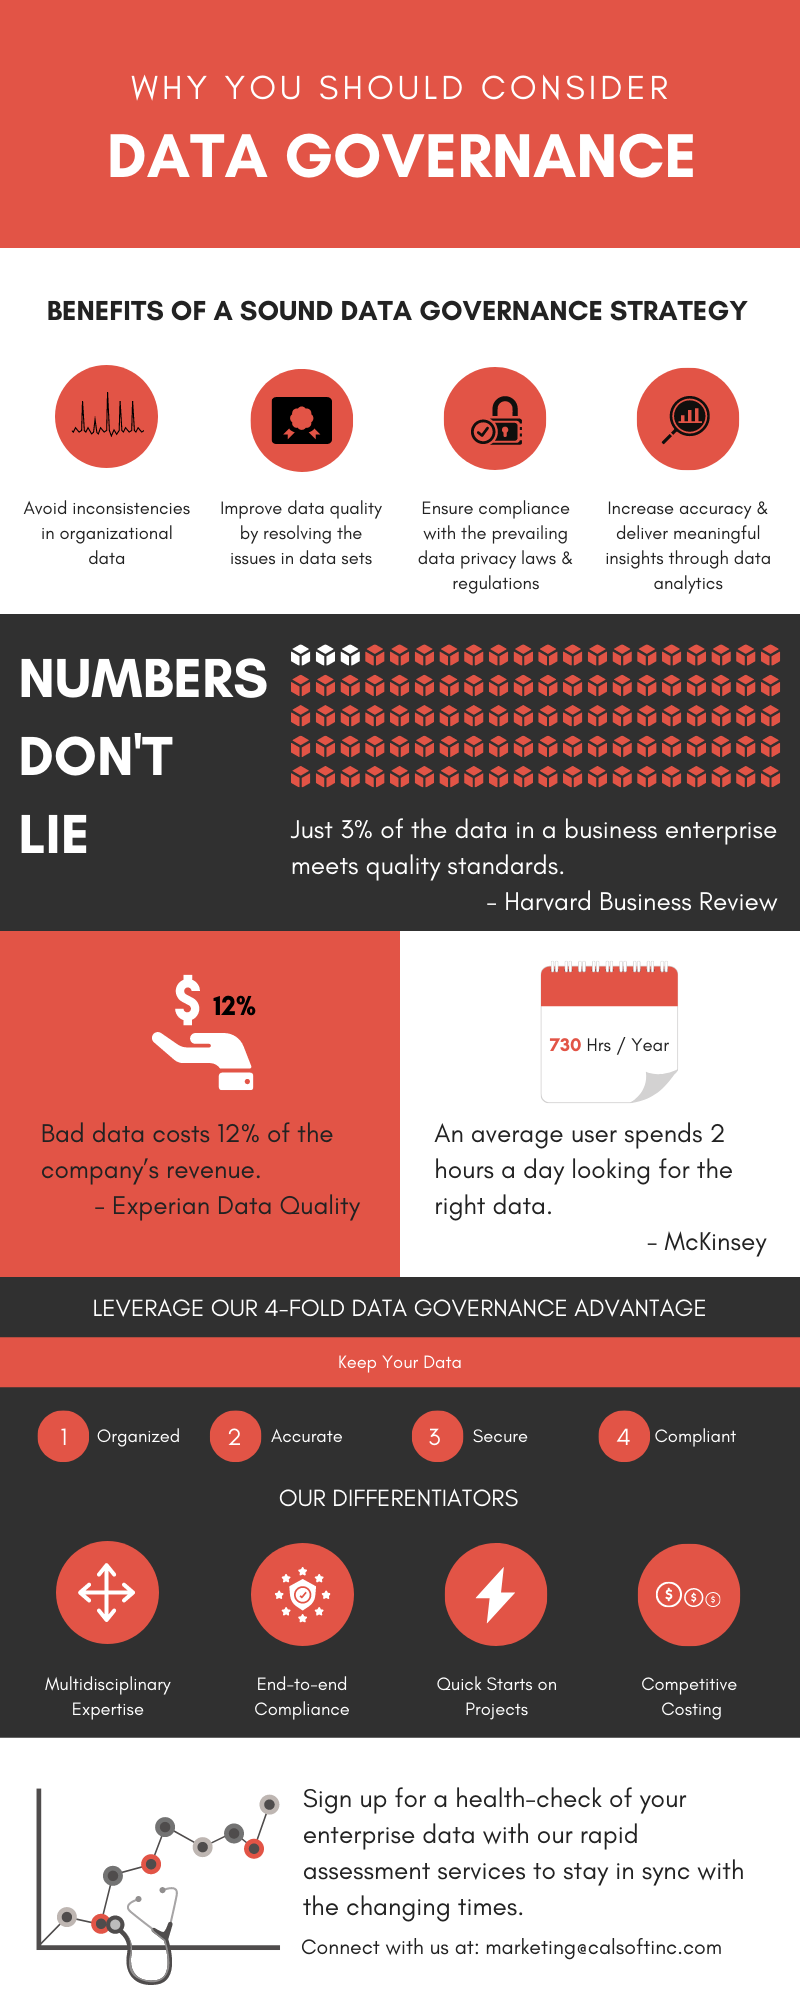 [Infoblog] Why you should consider Data Governance